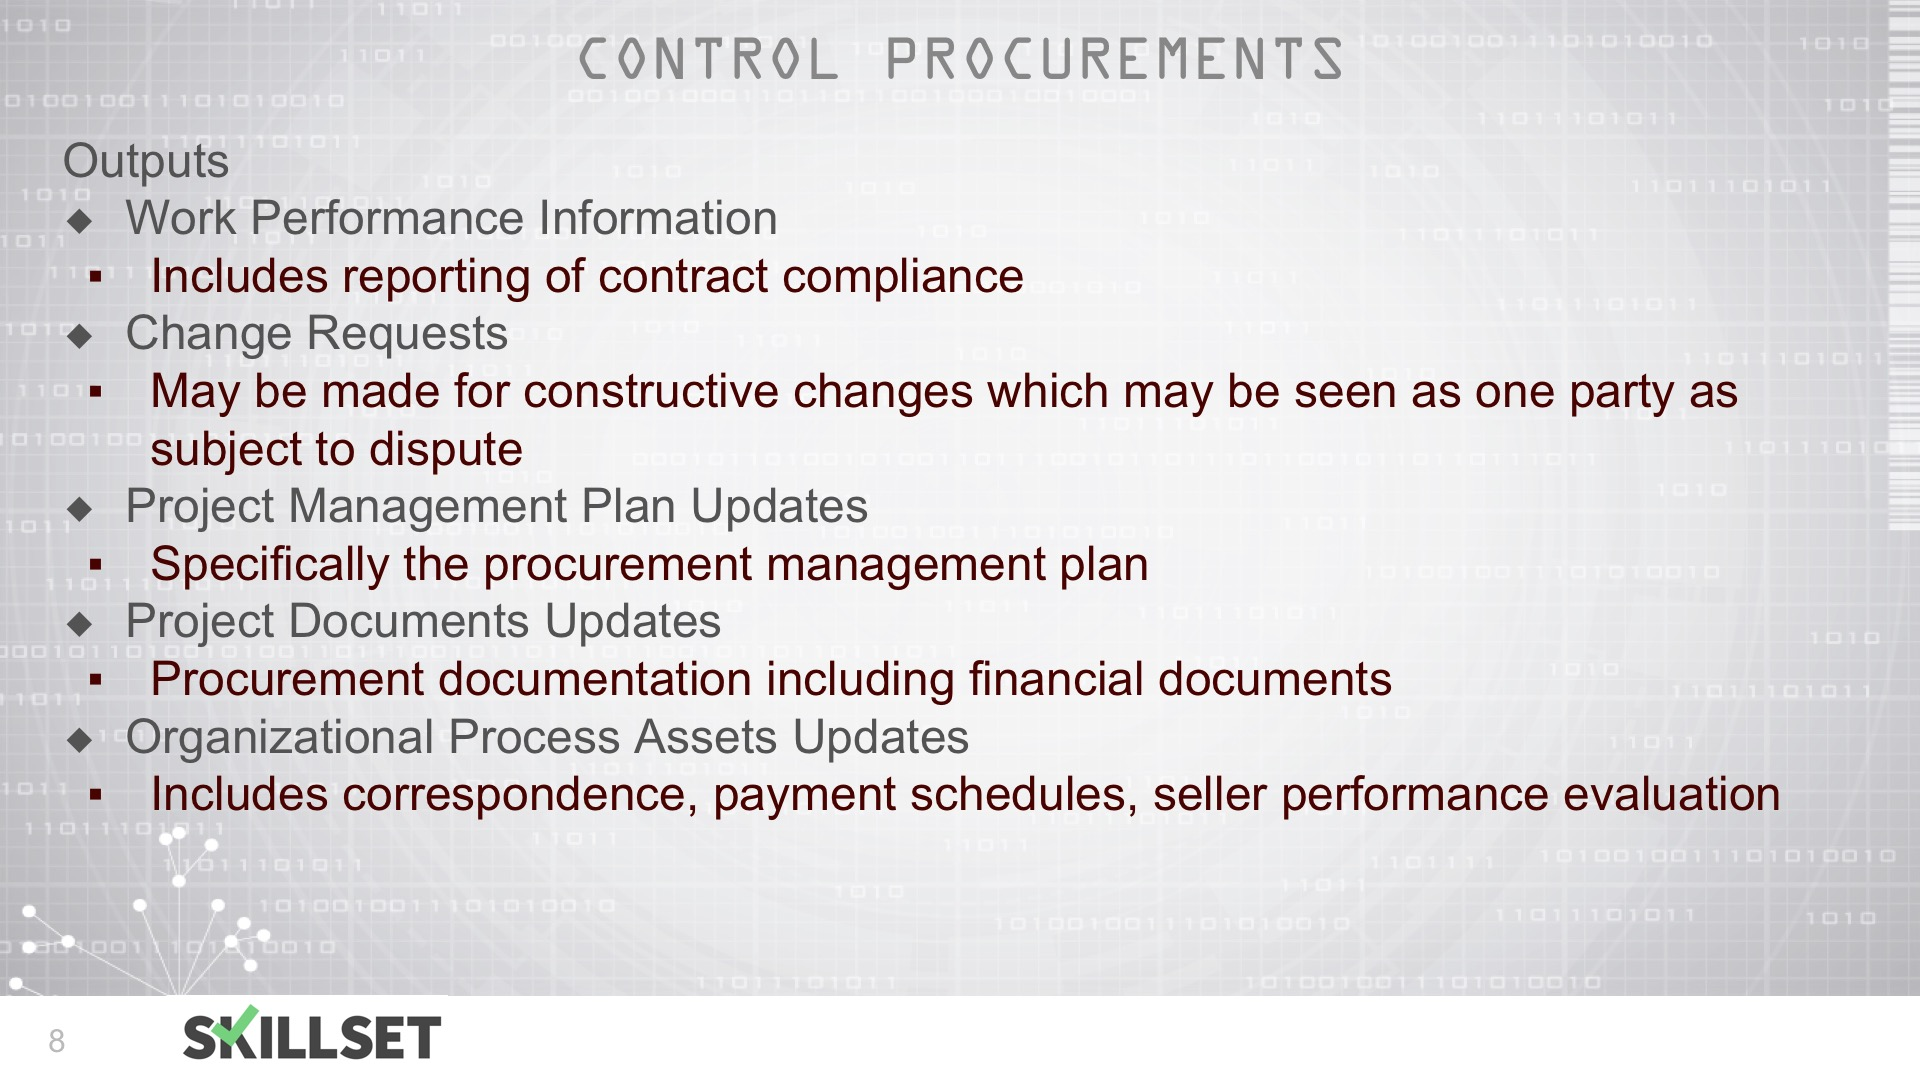 pmp/T99-Overview of Control Procurements and ITTOs.mp4